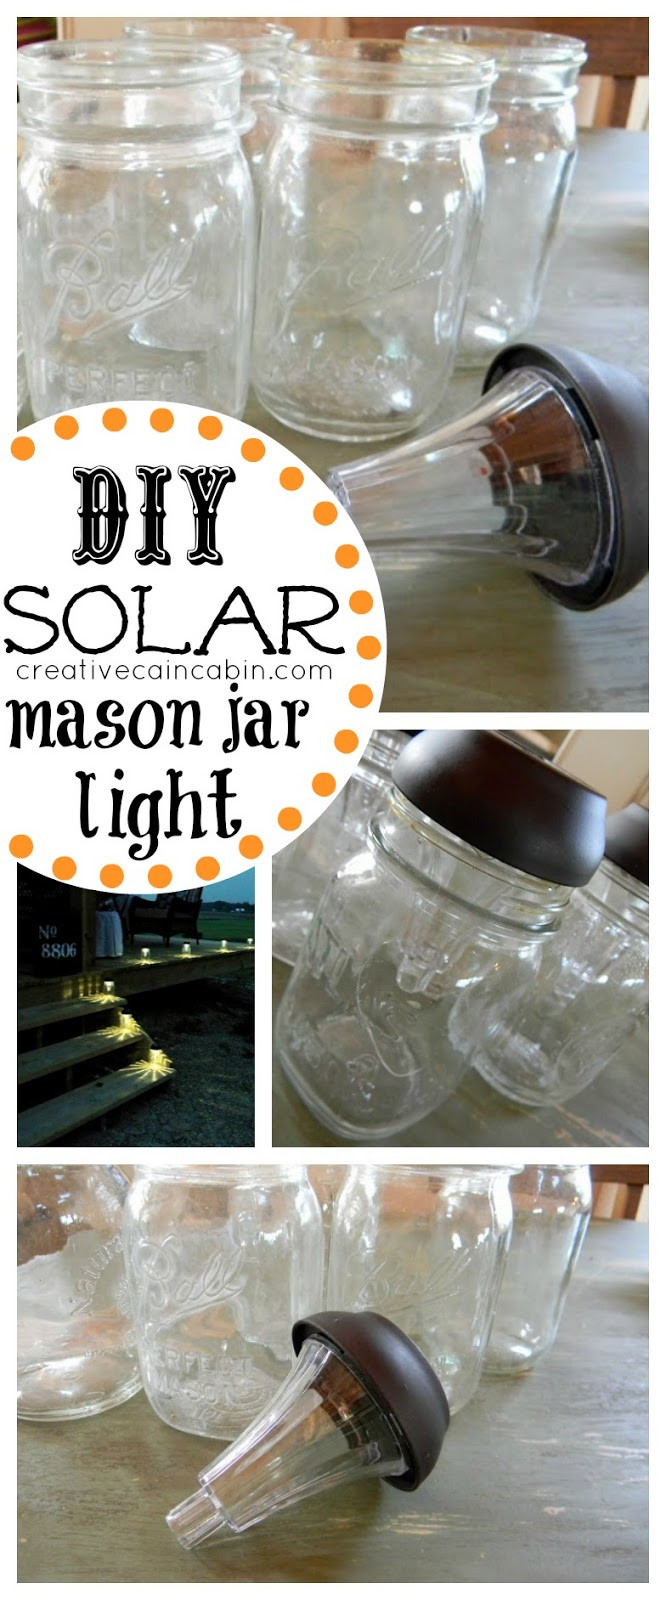 Best ideas about Mason Jars Solar Lights DIY . Save or Pin DIY Mason Jar Solar Lamps DIY for Life Now.